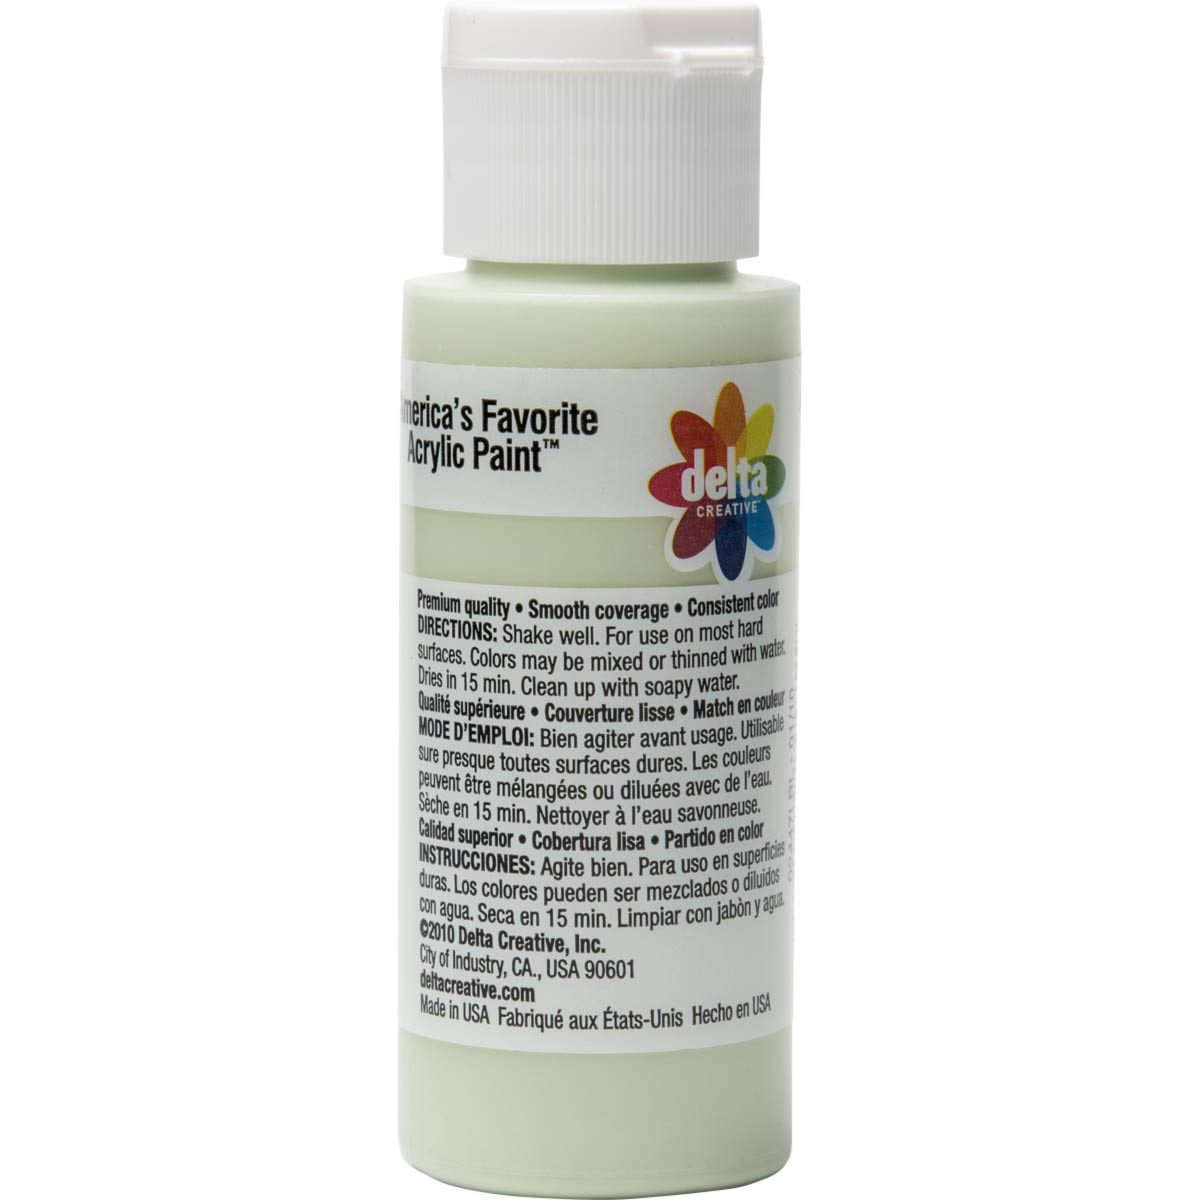 Delta Ceramcoat ® Acrylic Paint - Village Green, 2 oz. - 024470202W